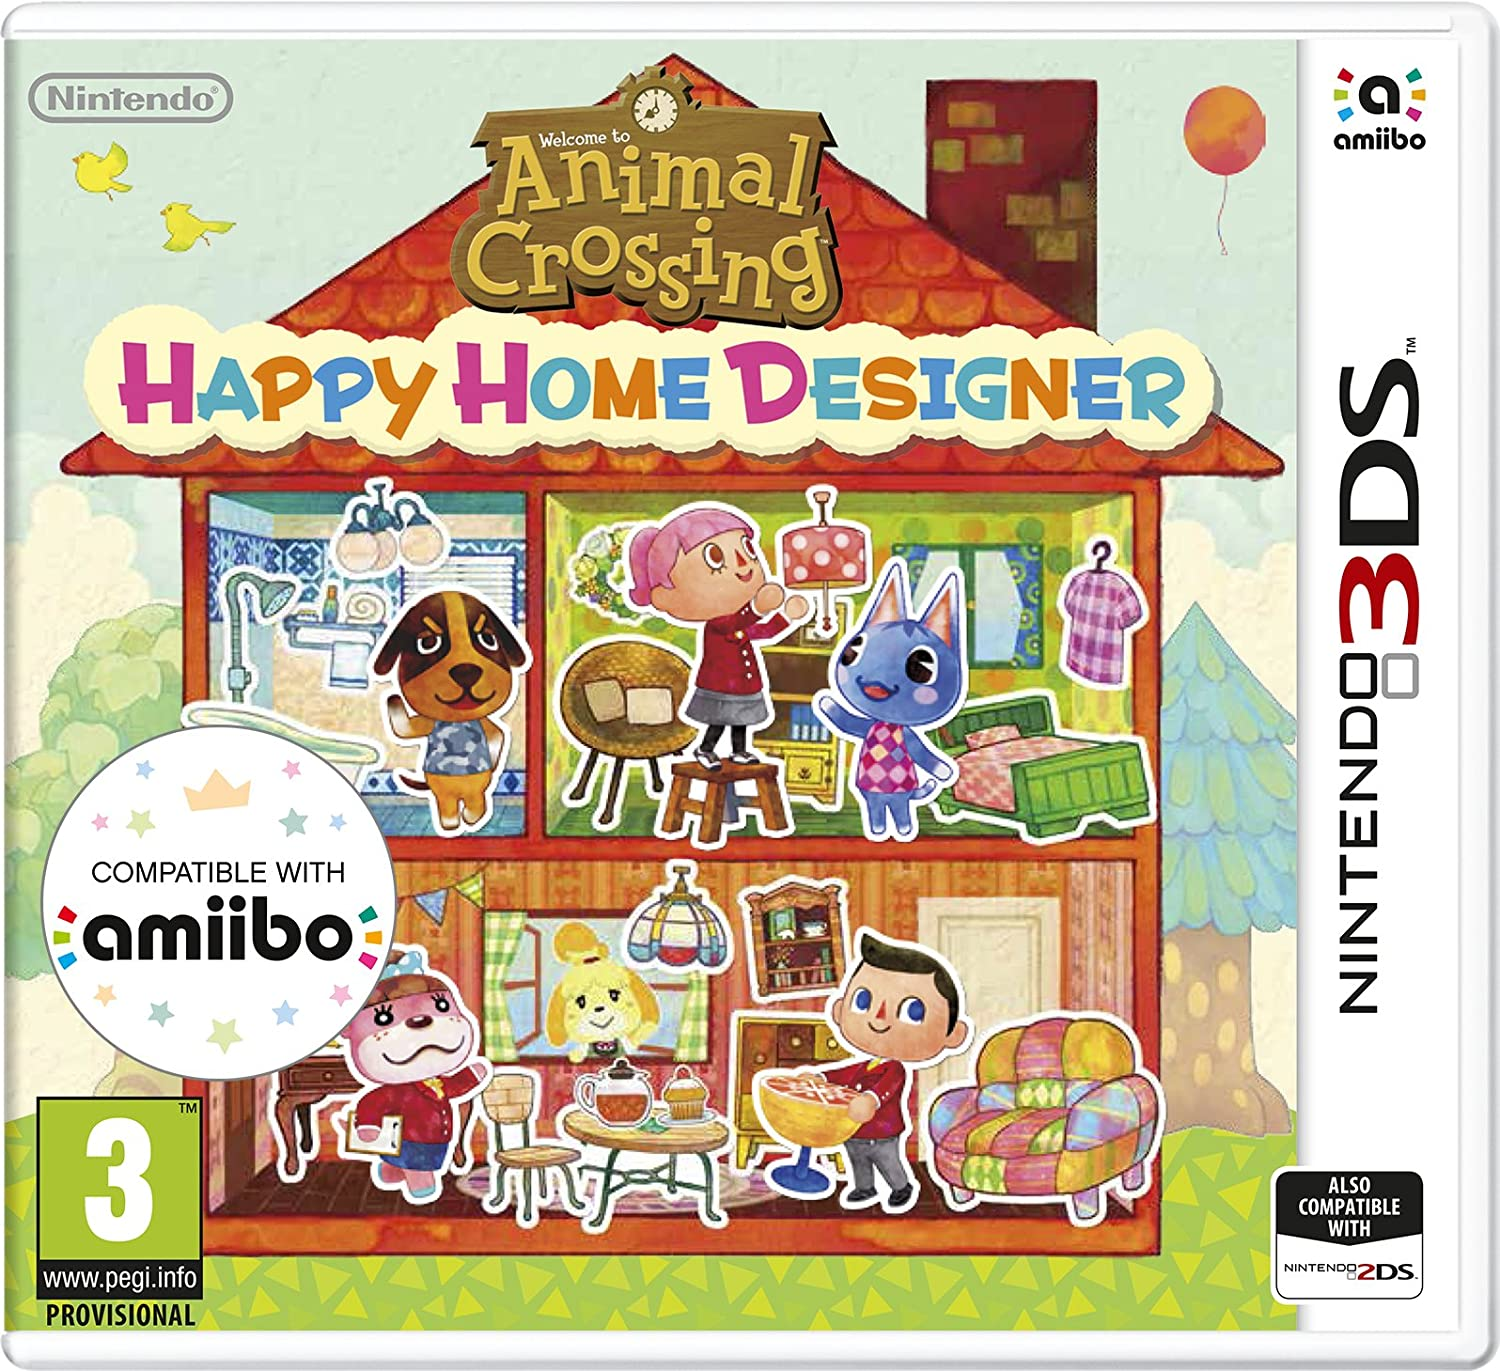 Animal Crossing: Happy Home Designer: Amazon.co.uk: PC & Video Games